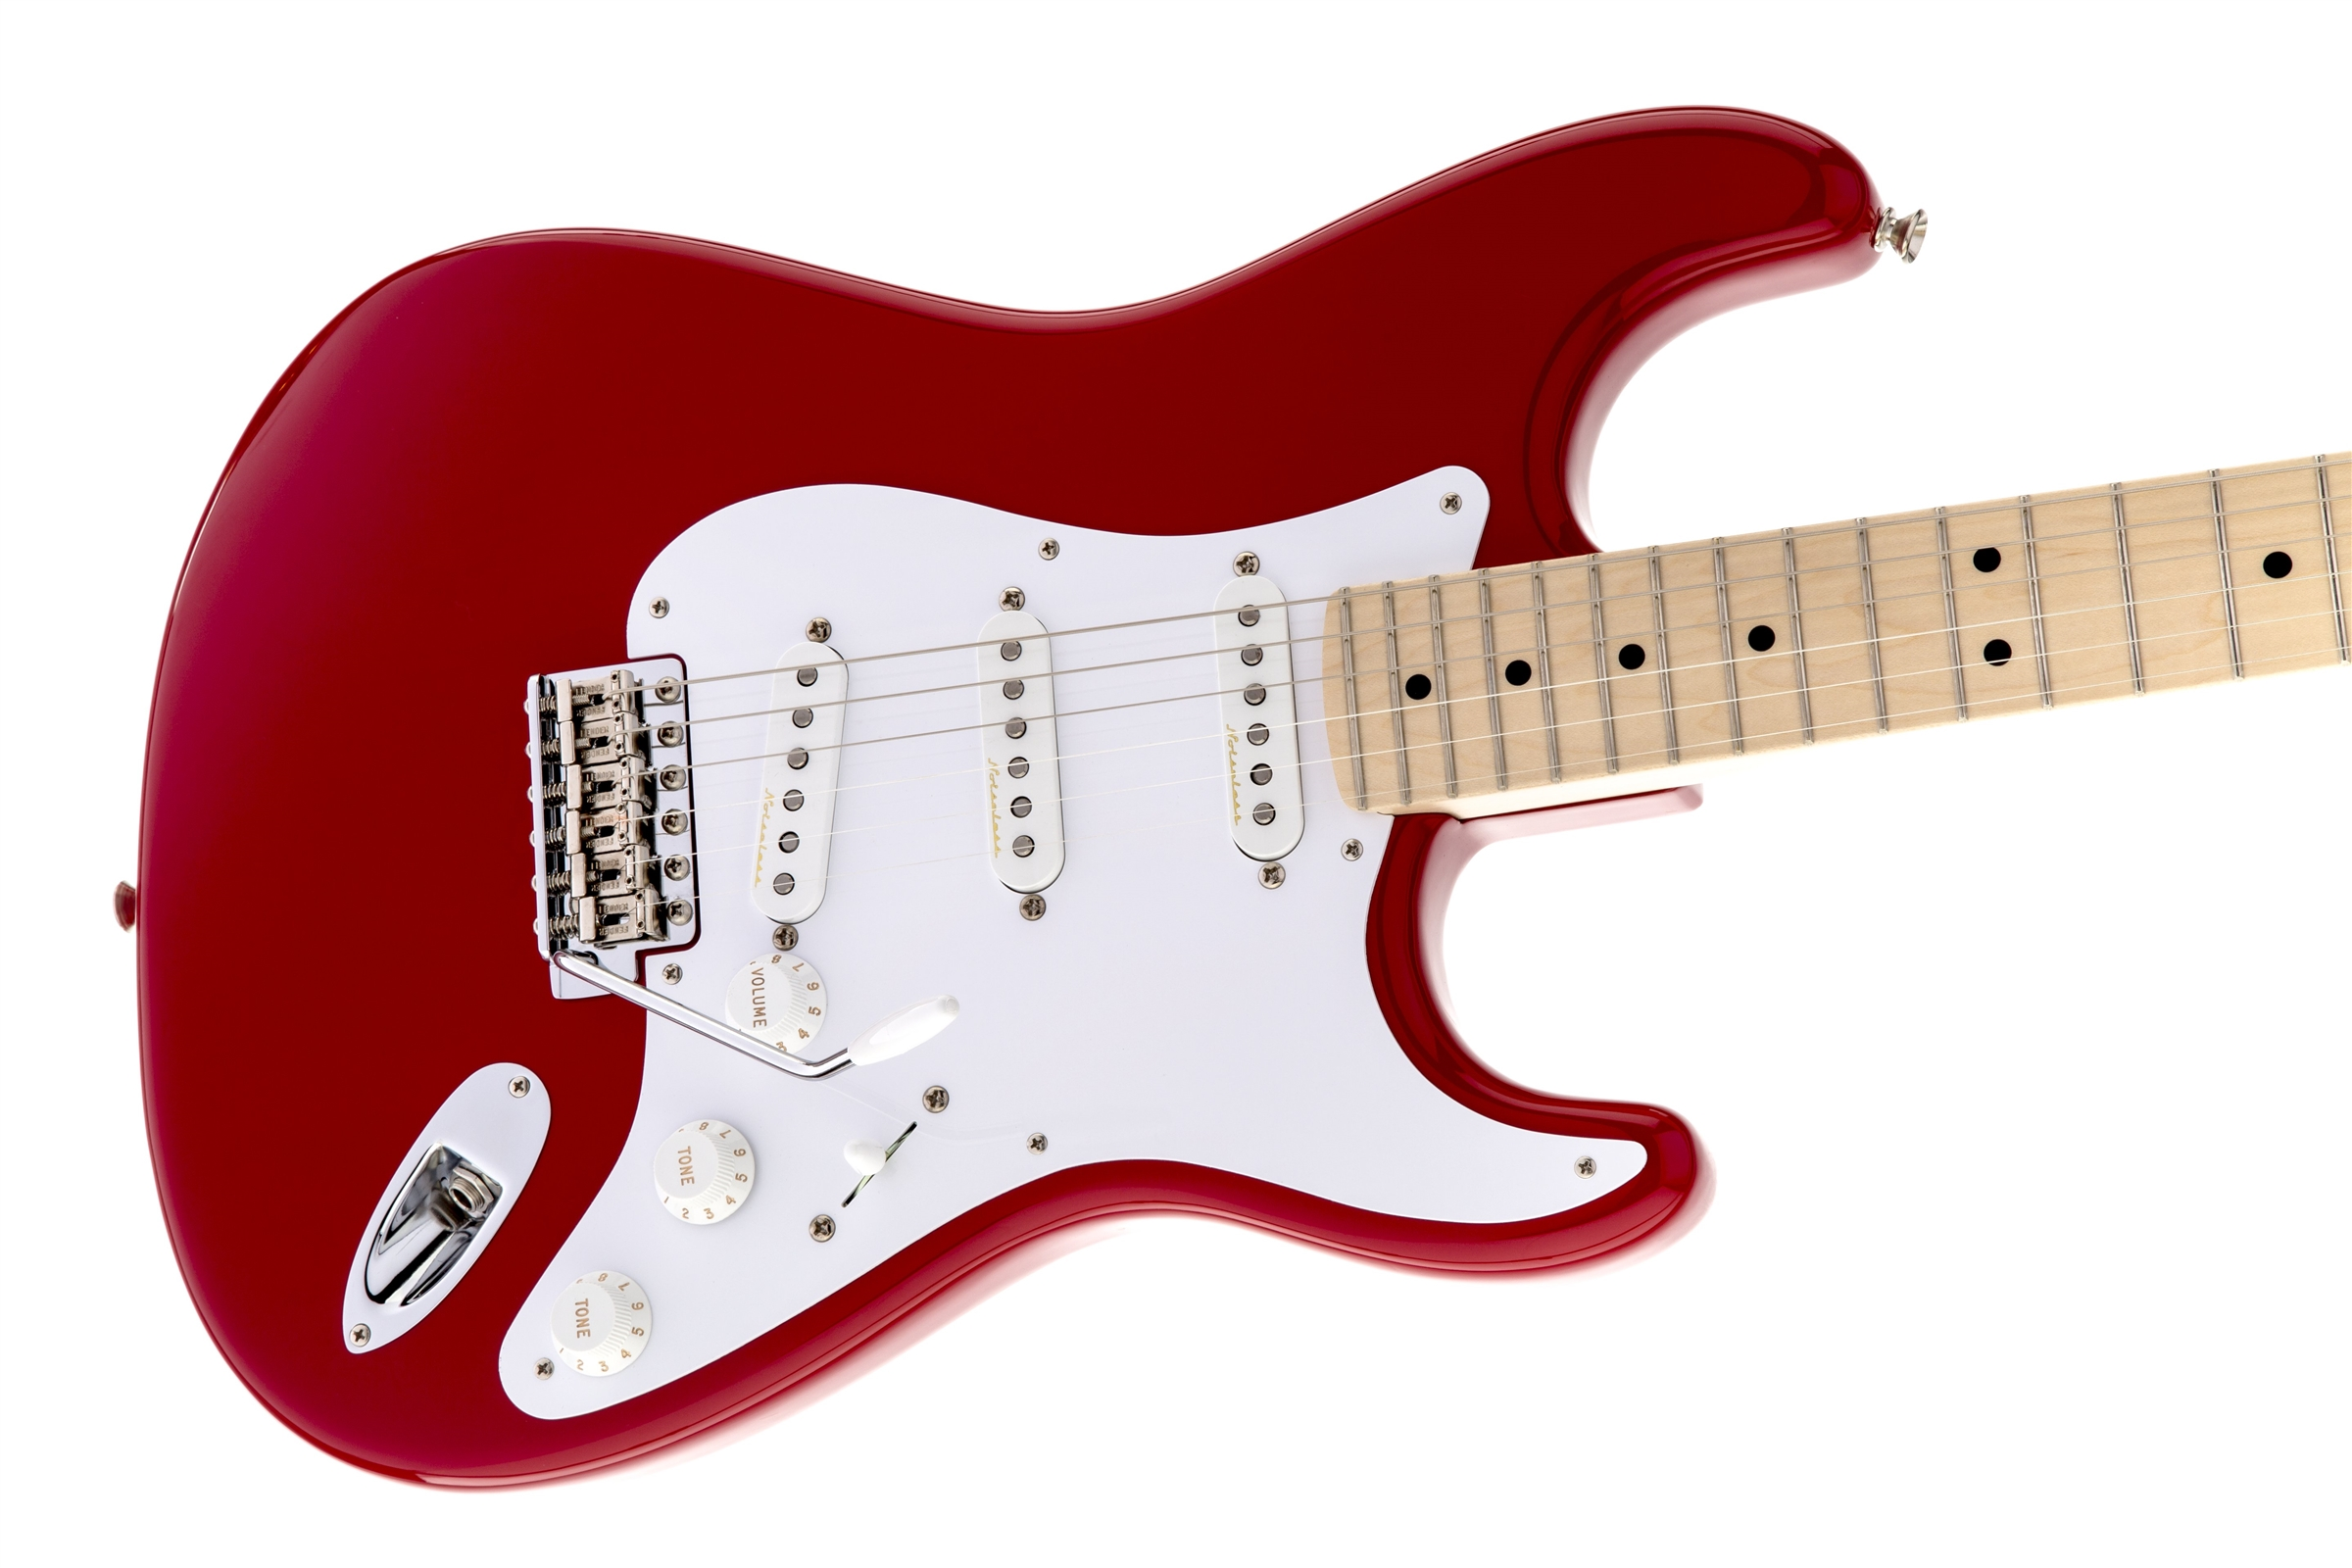 Fender Eric Clapton Stratocaster Wiring Diagram Pickup Lace Maple Fingerboard Torino Red Diagrams Strat Cool